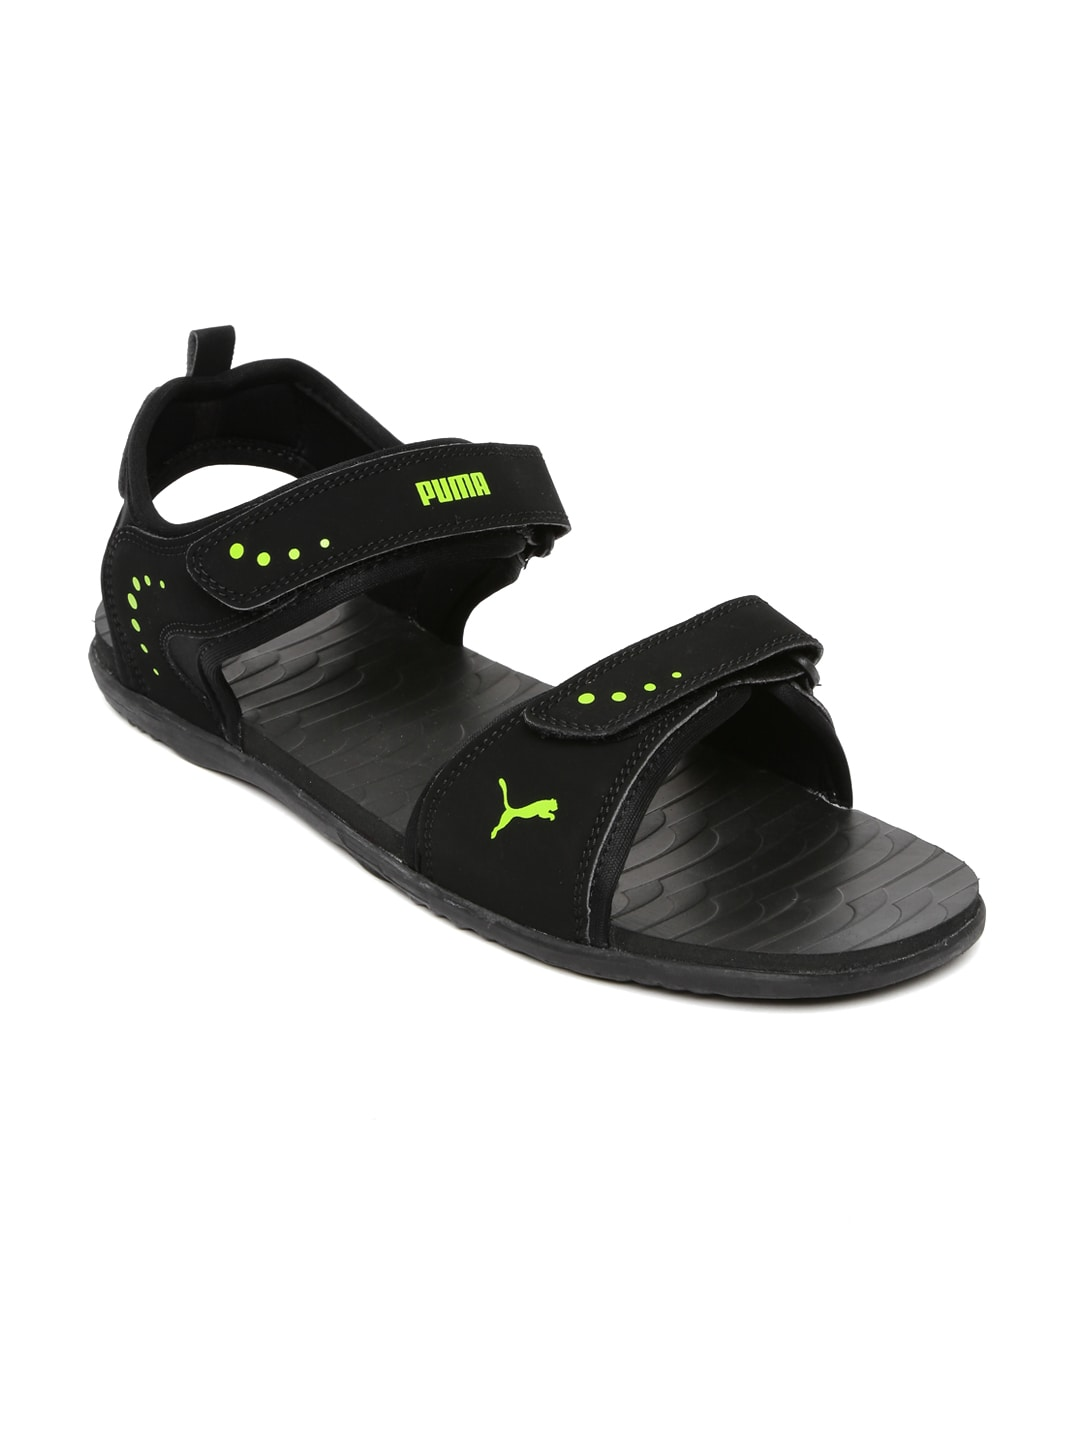 8688b8dca5c3 Puma 18993302 Men Black Sports Sandals - Best Price in India ...